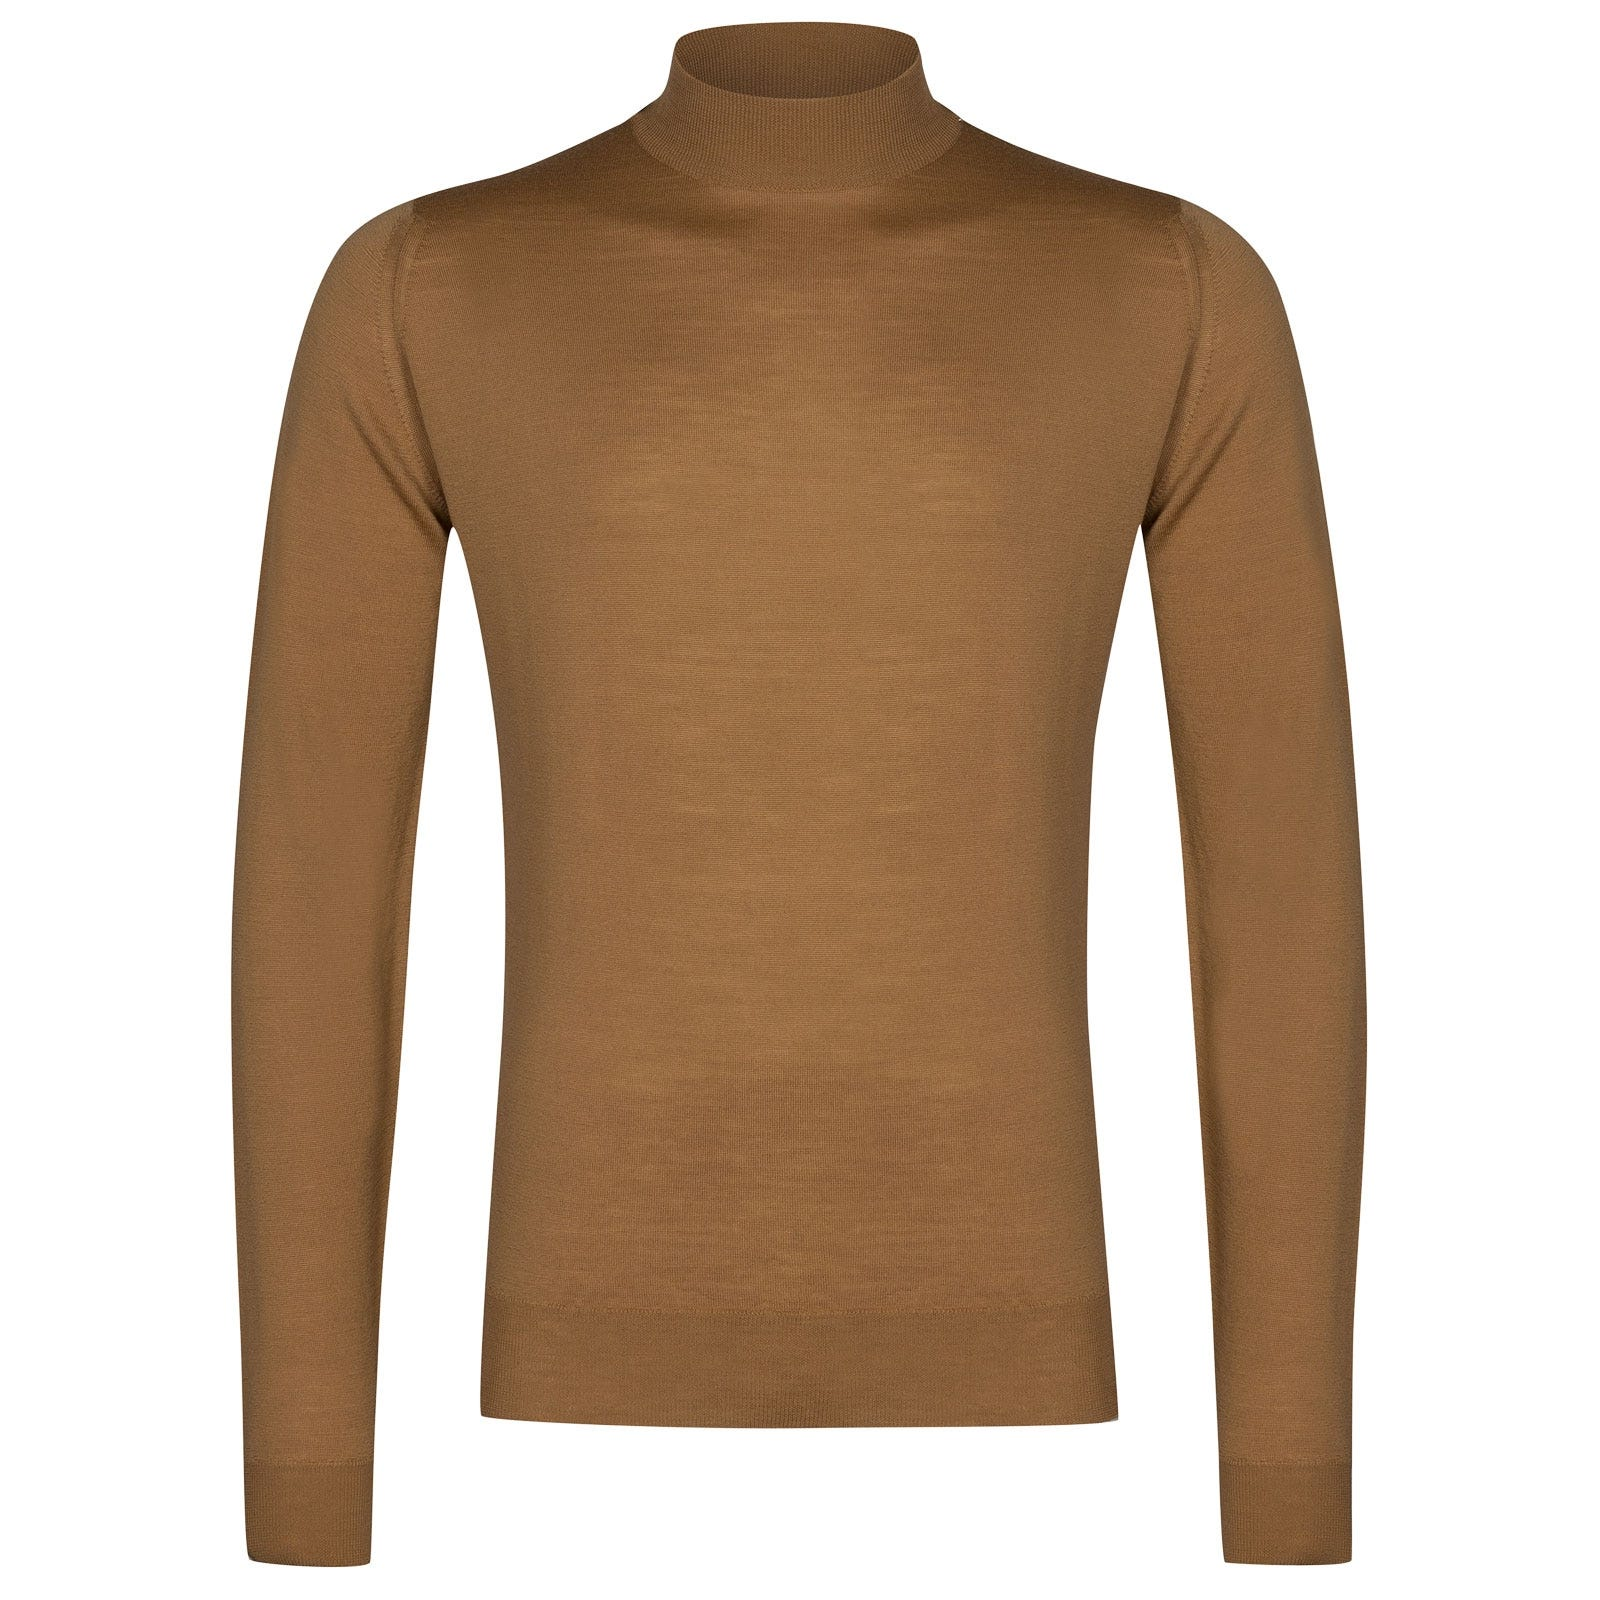 John Smedley Harcourt in Camel Pullover-SML